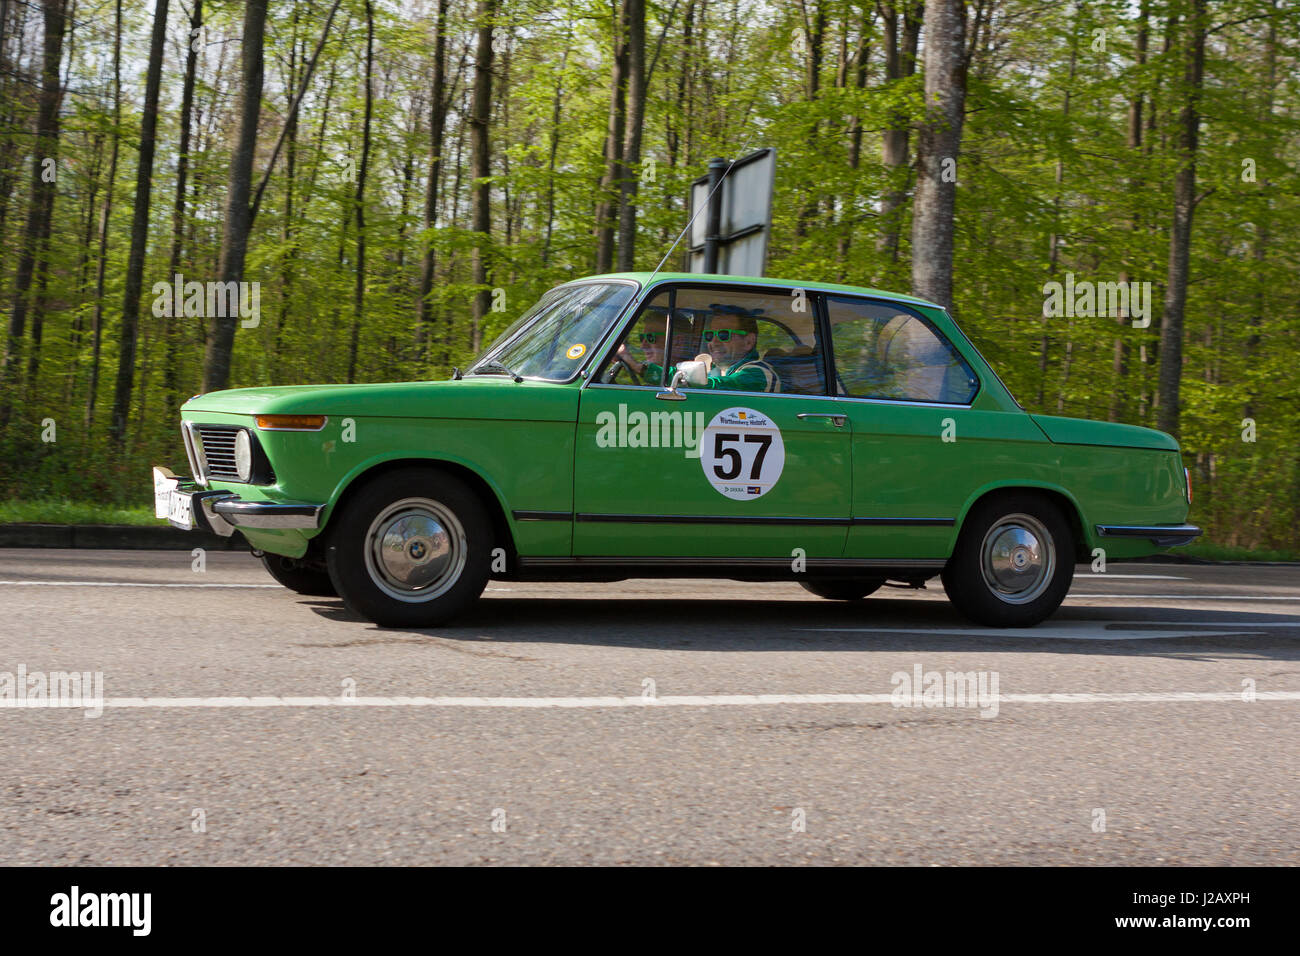 HEIDENHEIM, GERMANY - MAY 4, 2013: Uwe Thalheimer and Michael Moser in their 1976 BMW 1502 at the ADAC Wurttemberg - Stock Image